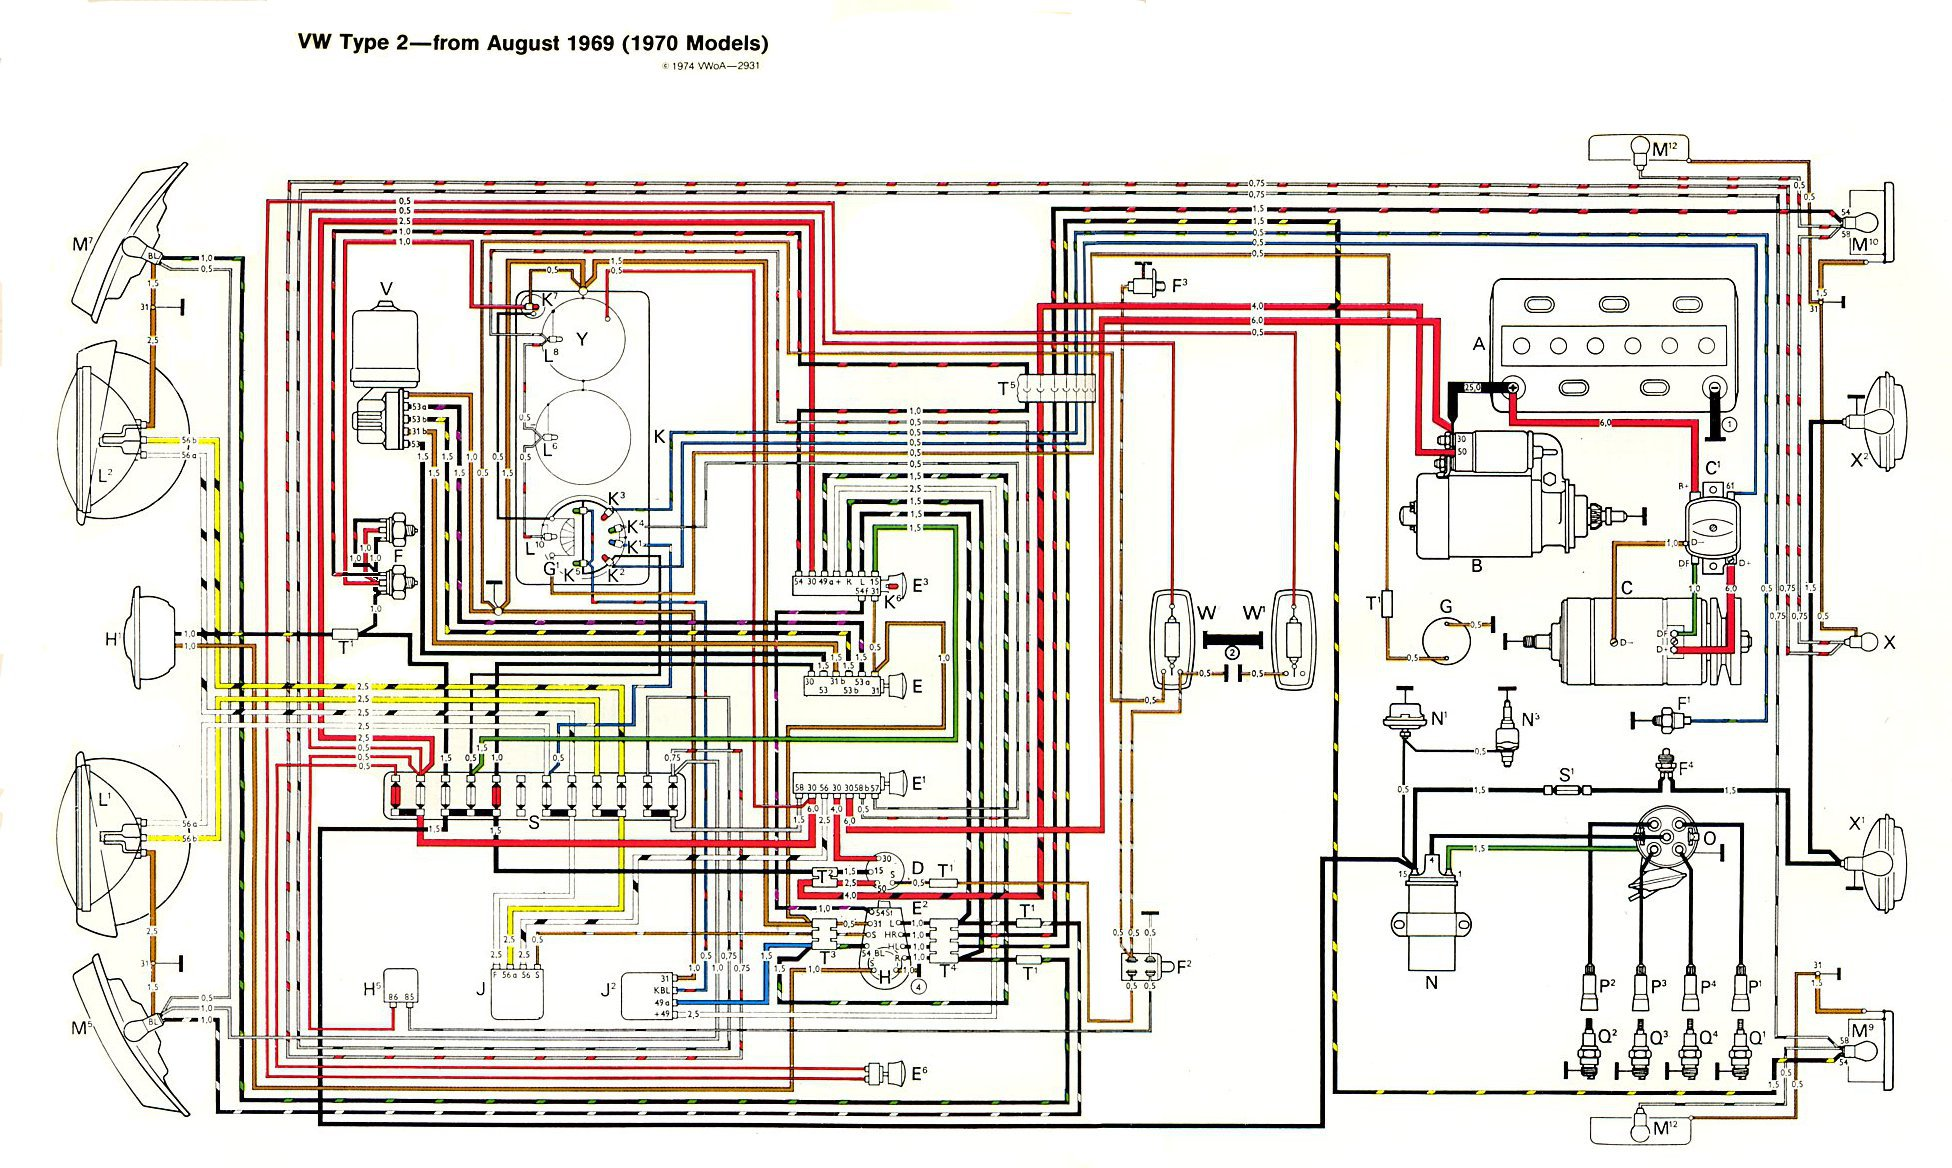 baybus_70 thesamba com type 2 wiring diagrams 1970 vw bug wiring diagram at panicattacktreatment.co